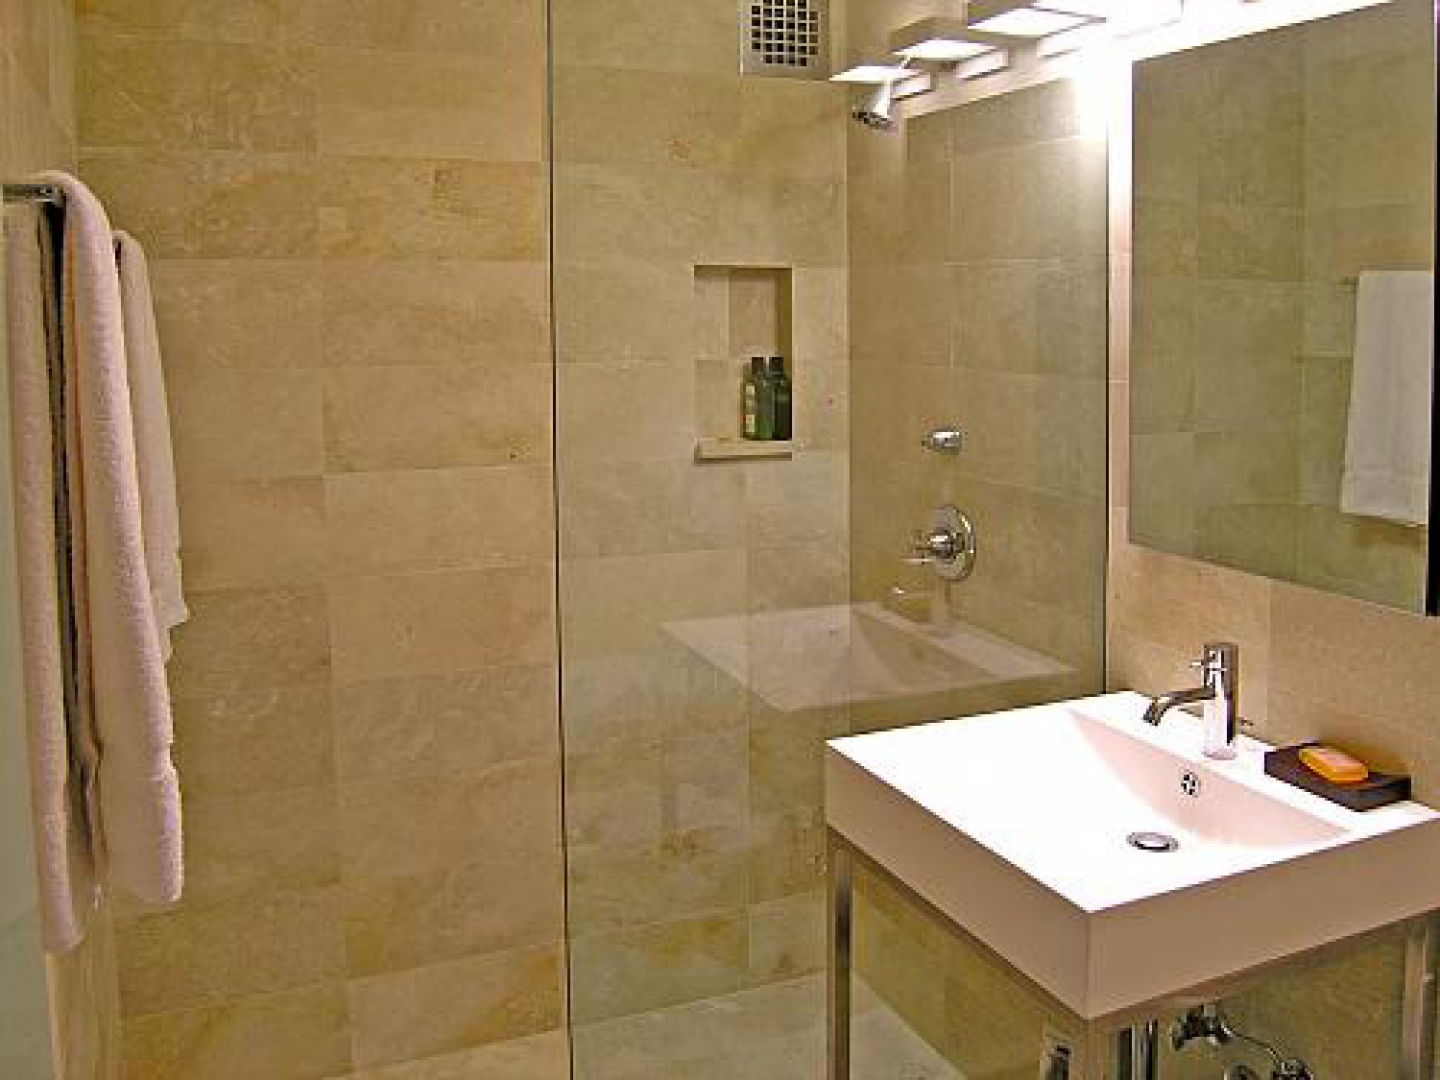 30 nice pictures and ideas bath and tile innovations Bathroom tile pictures gallery